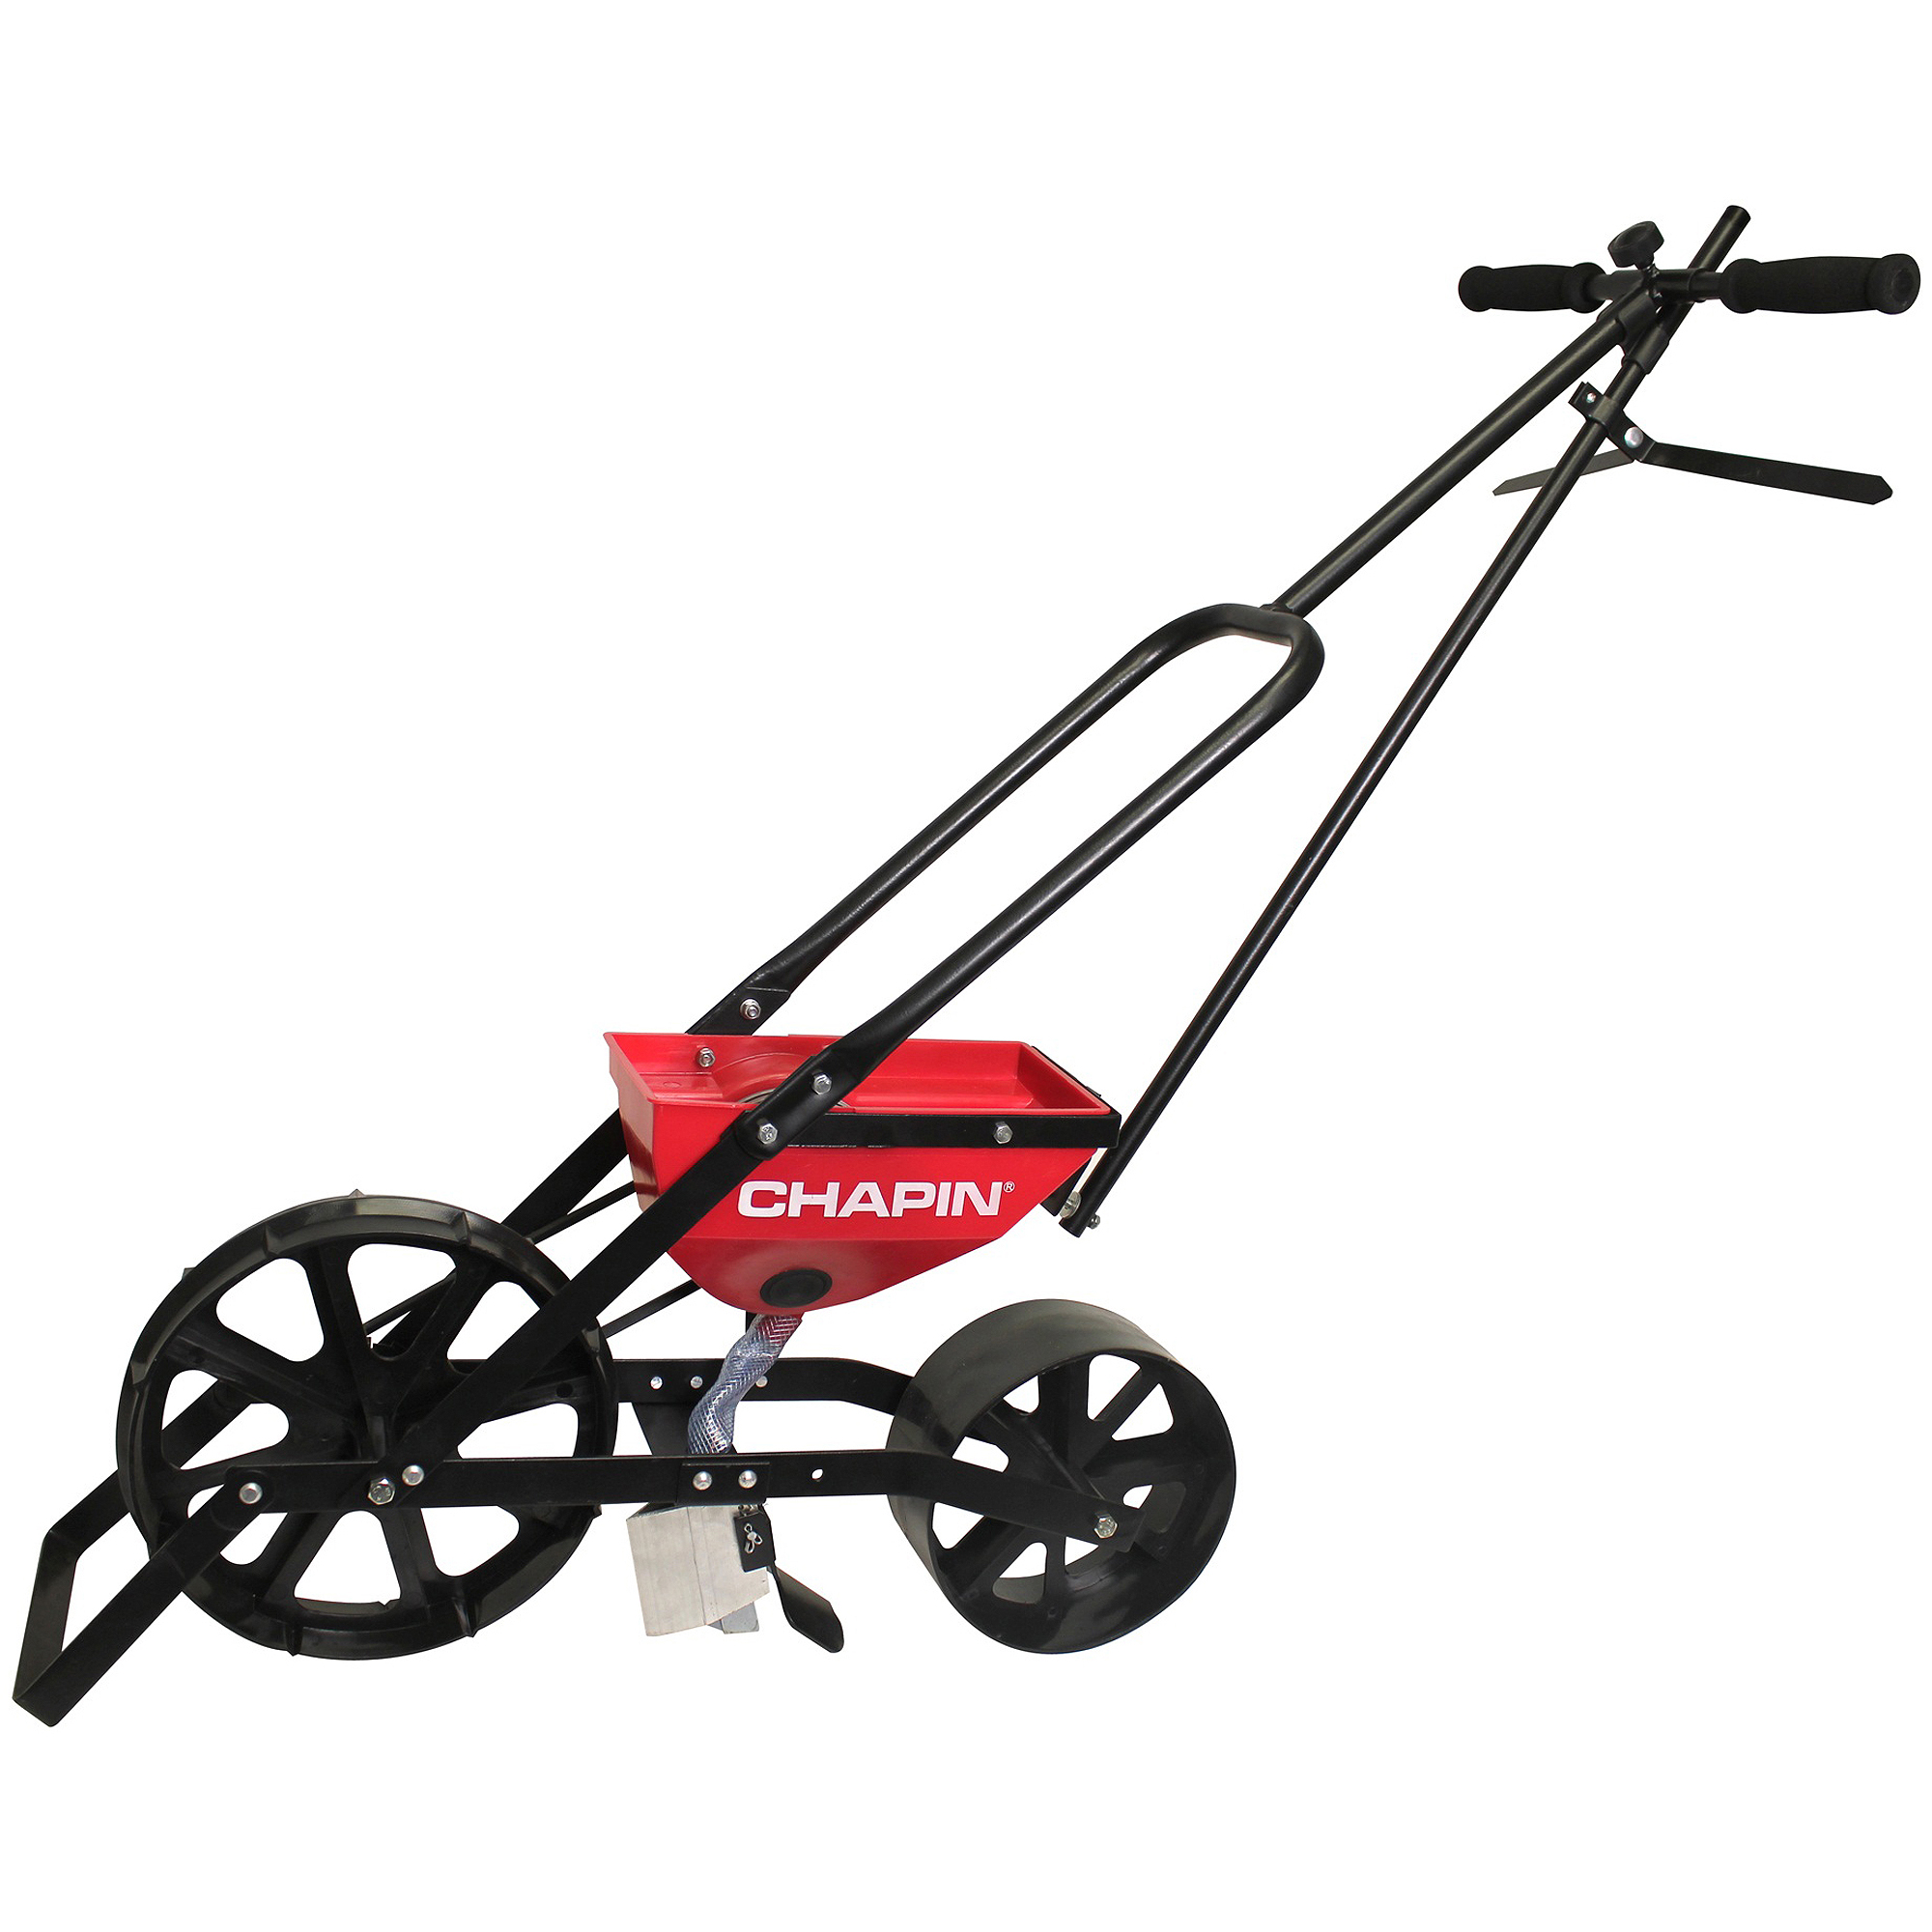 Garden Seeder with 6 Seed Plates Walmartcom